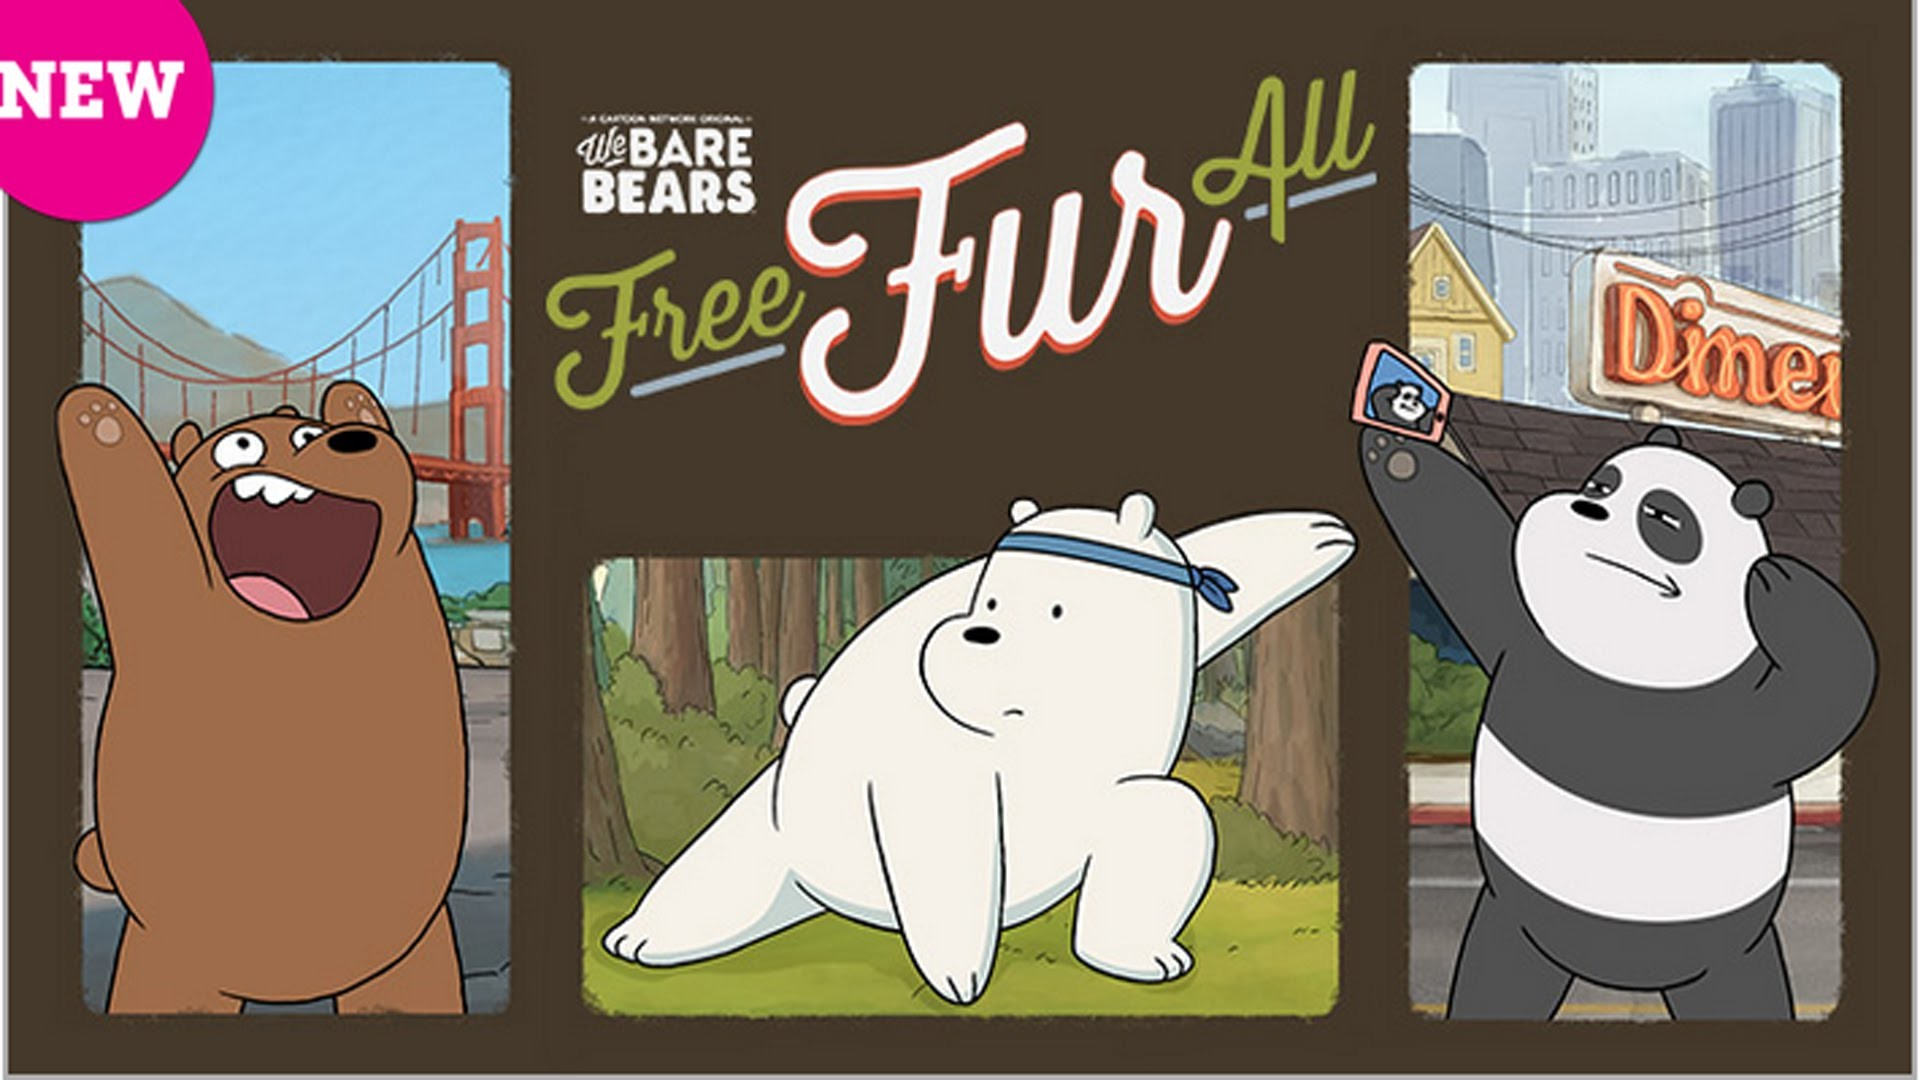 Ice Bear Rules All! | Free Fur All | We Bare Bears Cartoon Network Games